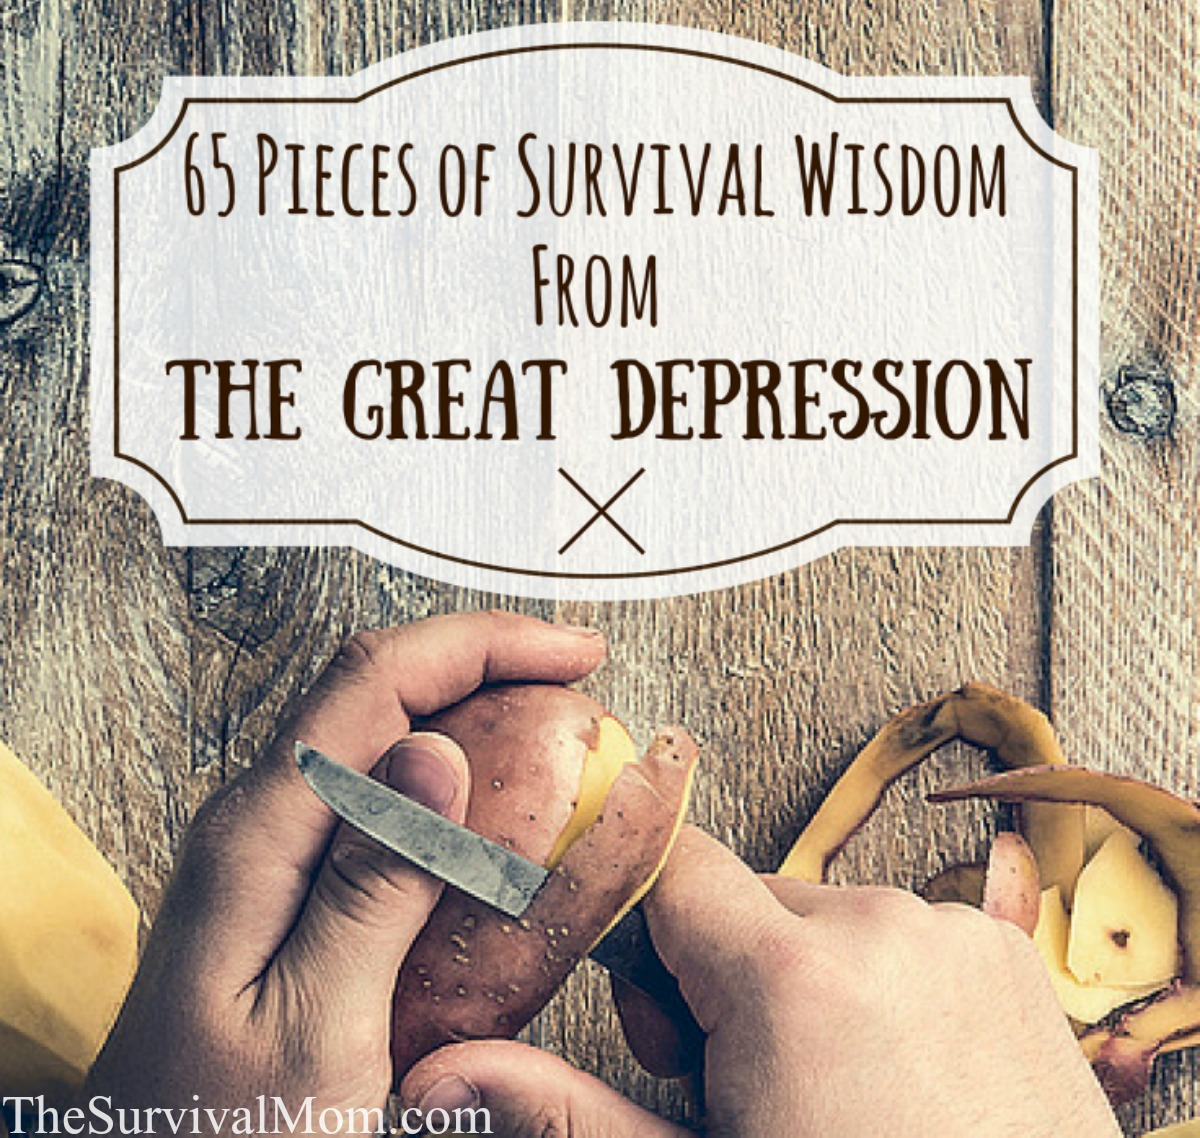 65 pieces of survival wisdom from the great depression survival mom survival wisdom great depression